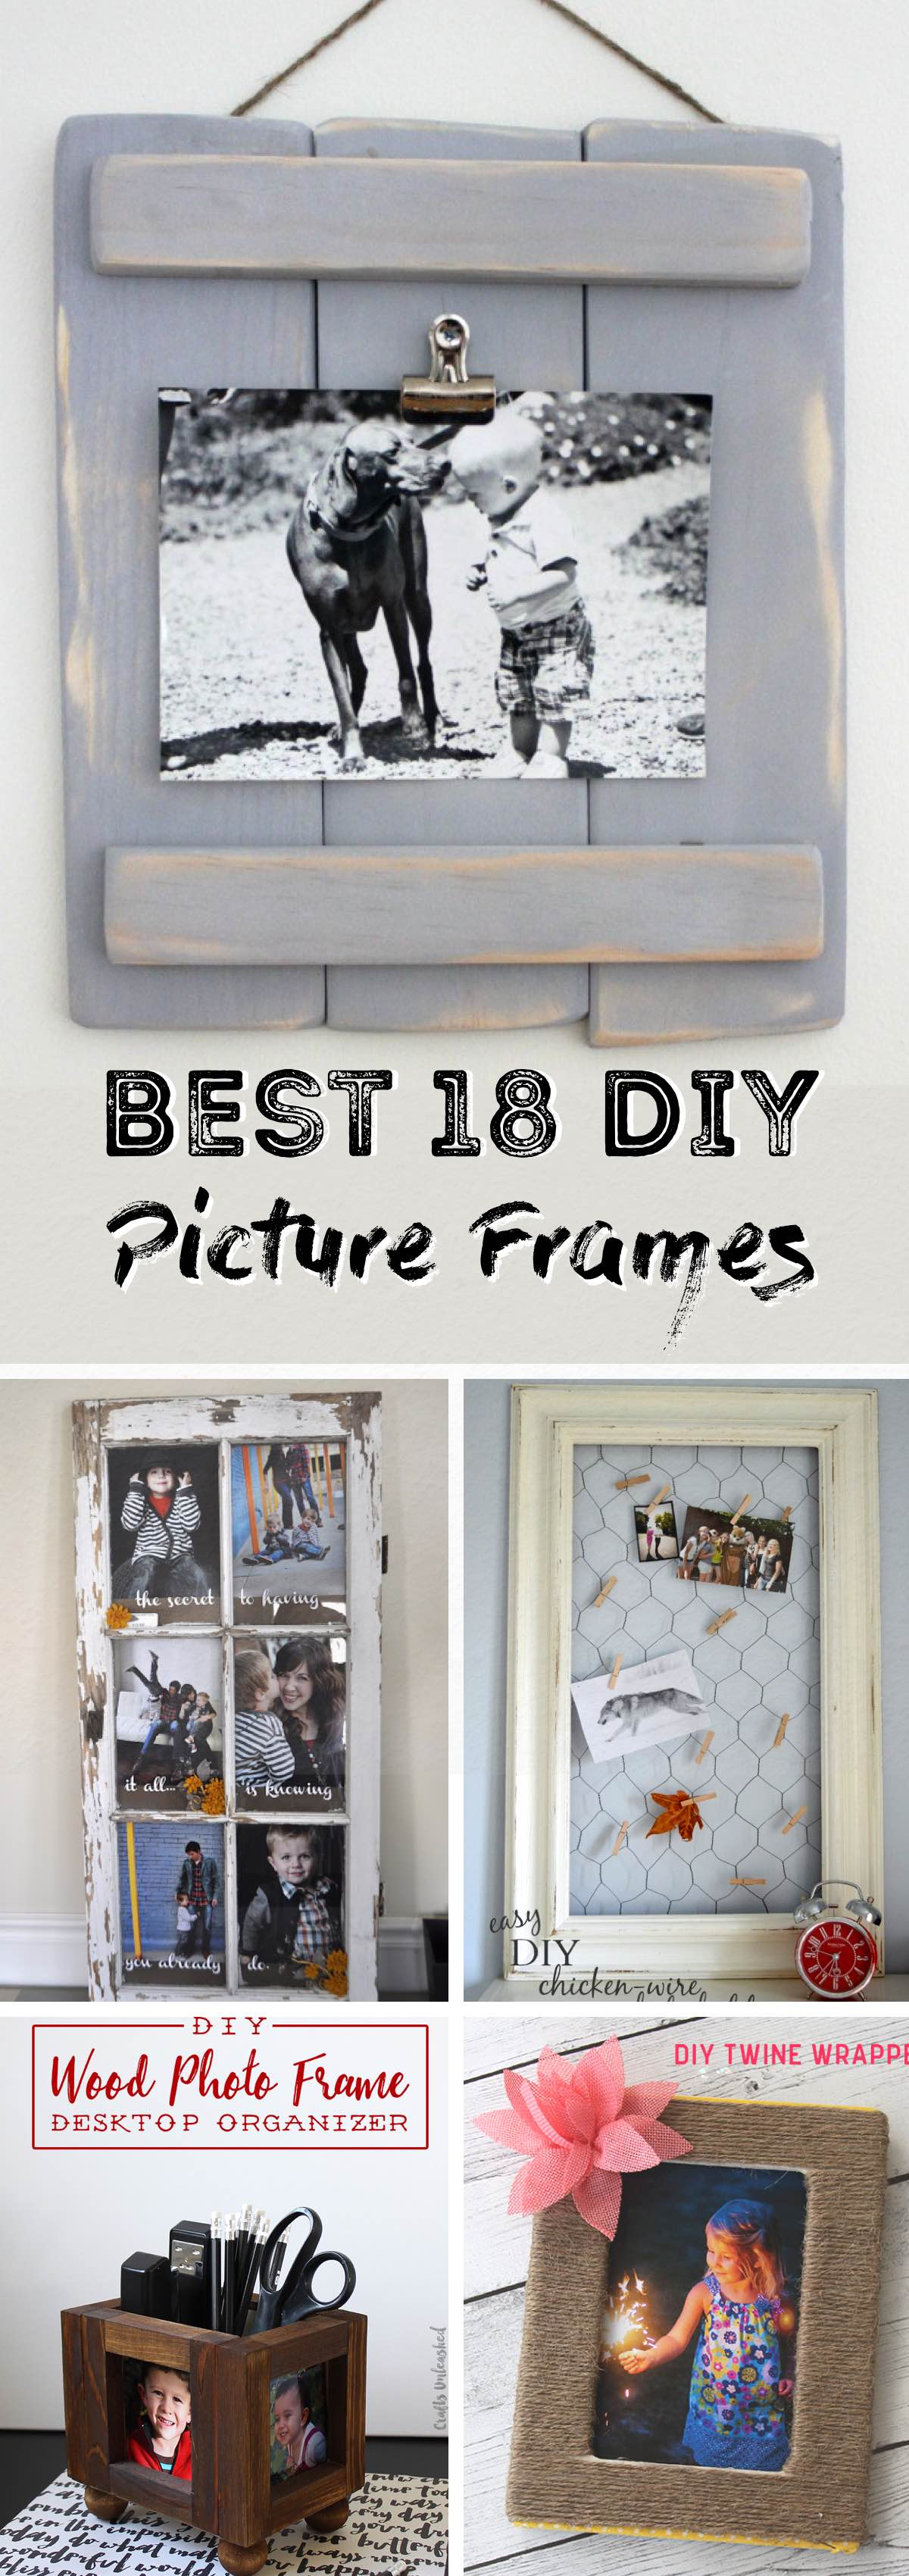 18 DIY Picture Frames Displaying Your Photos with Utmost Beauty!